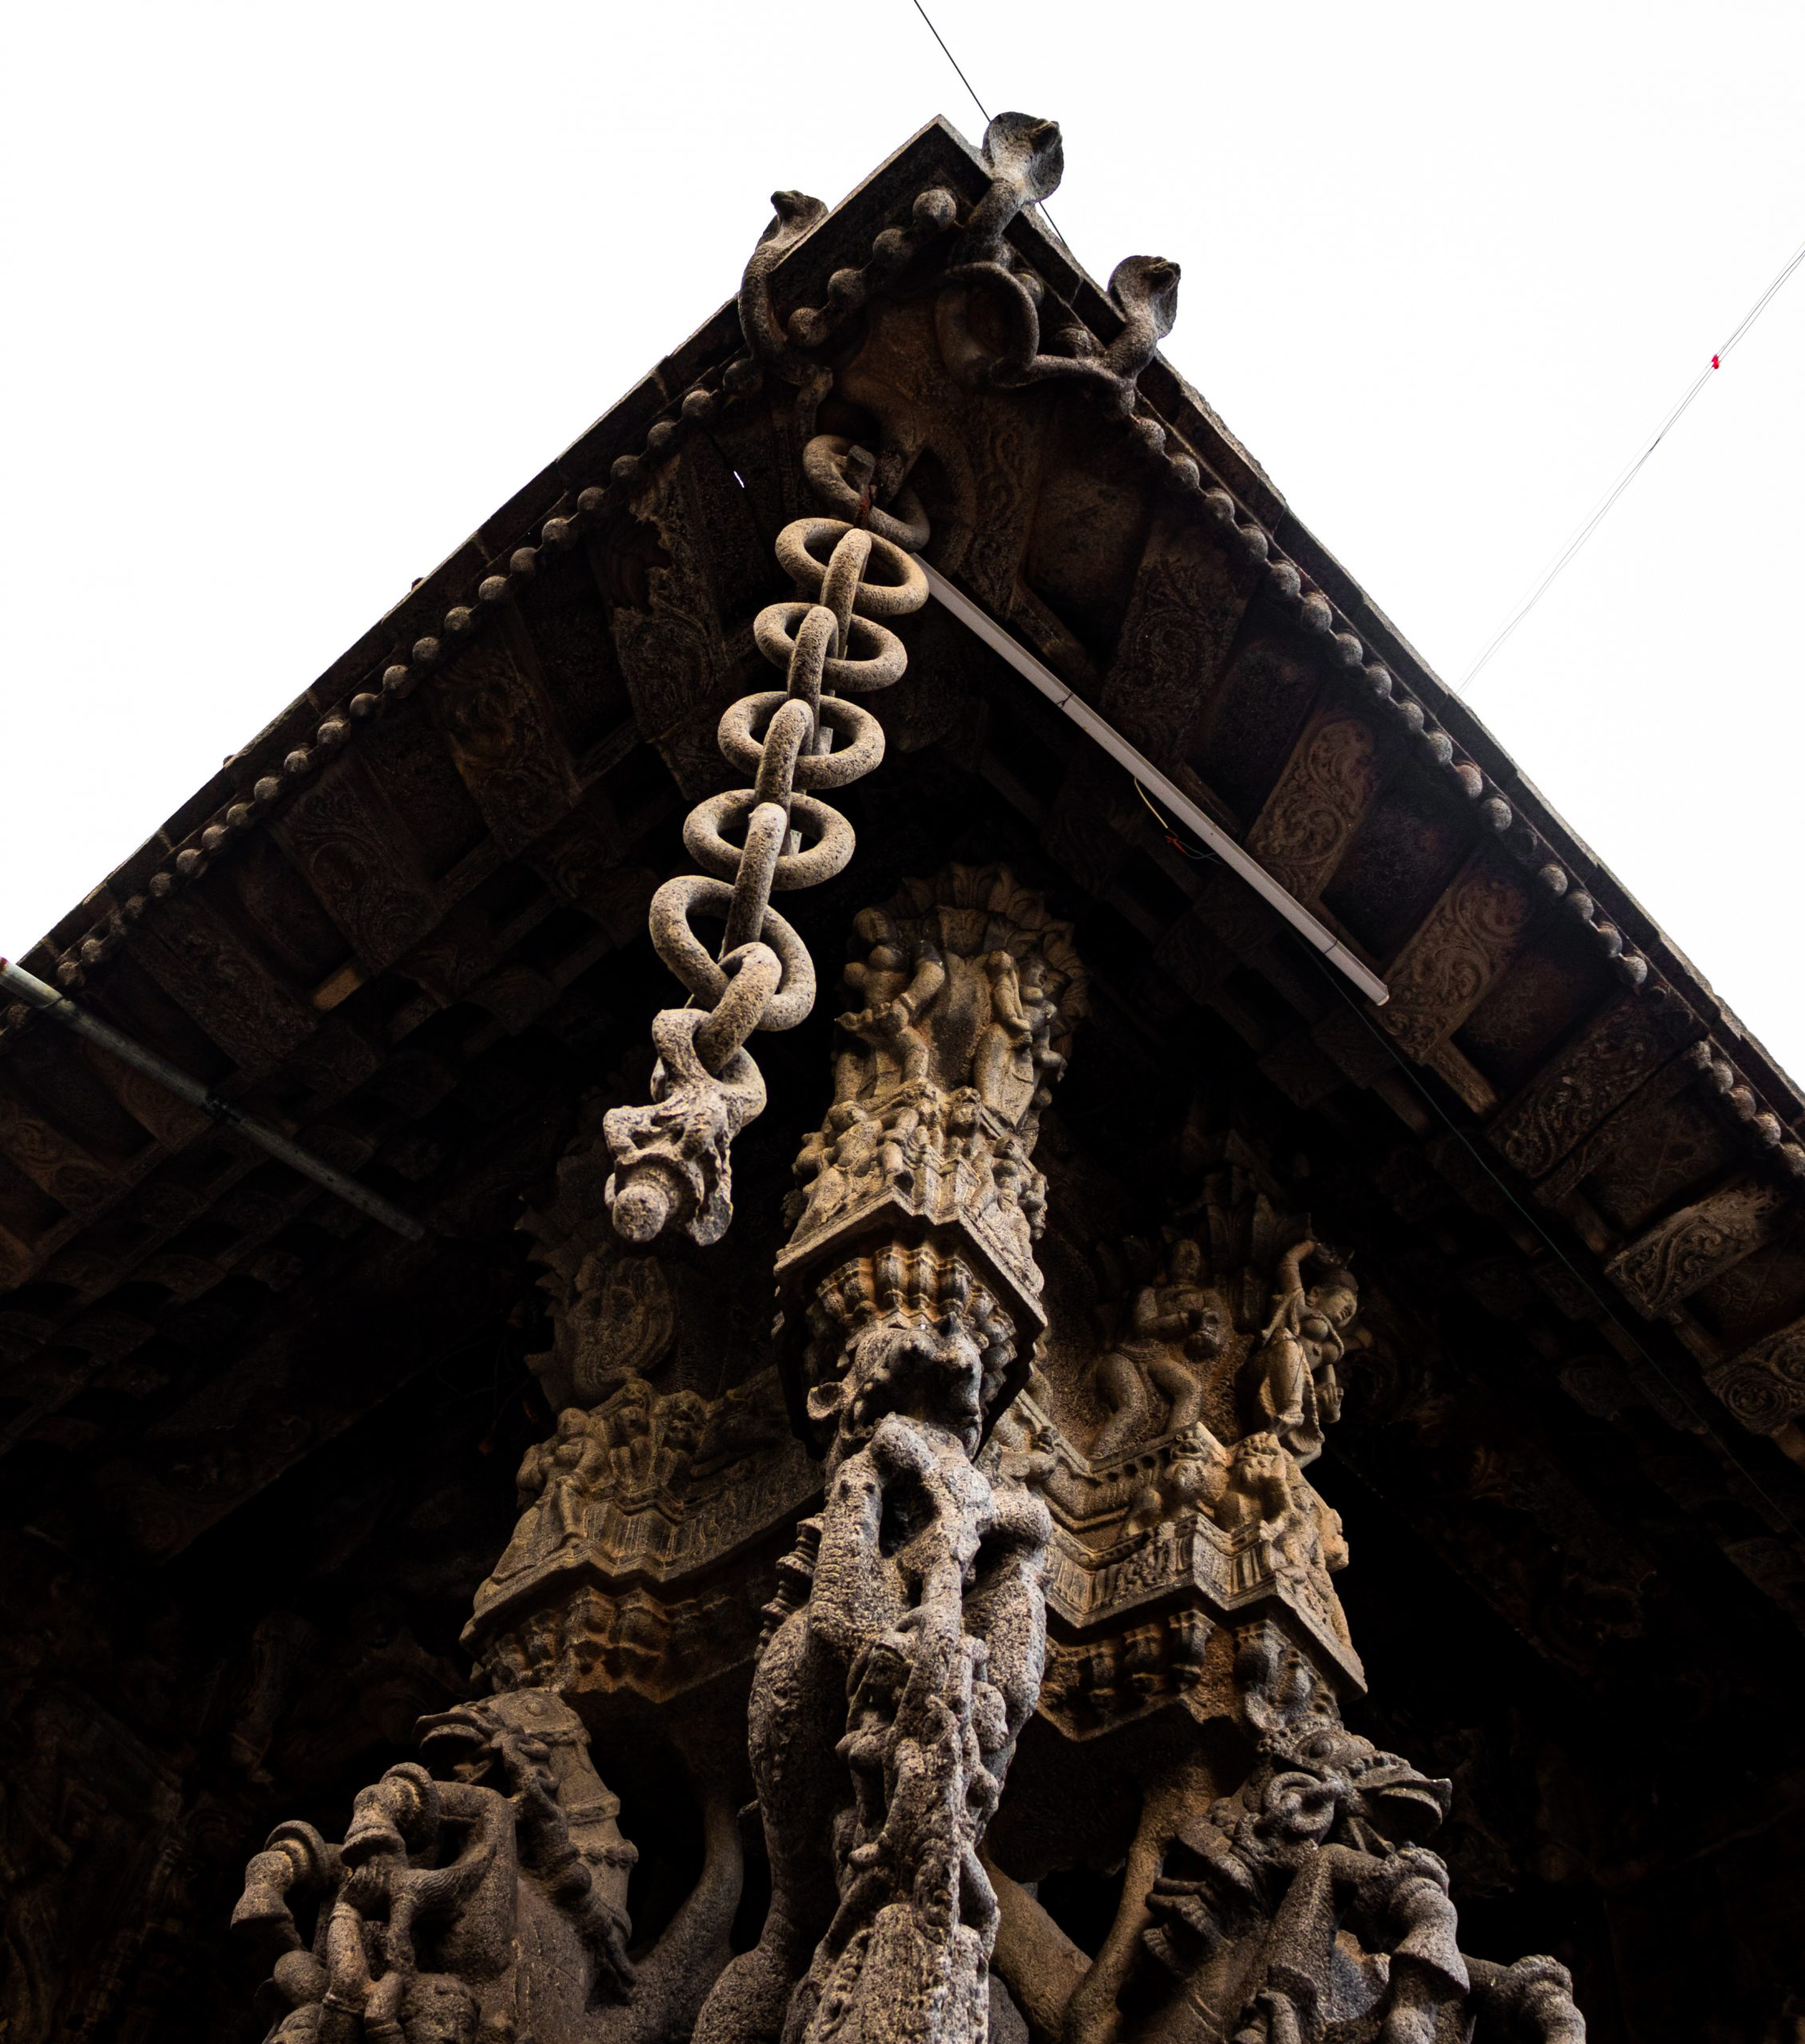 Chain and temple statue under tin shade